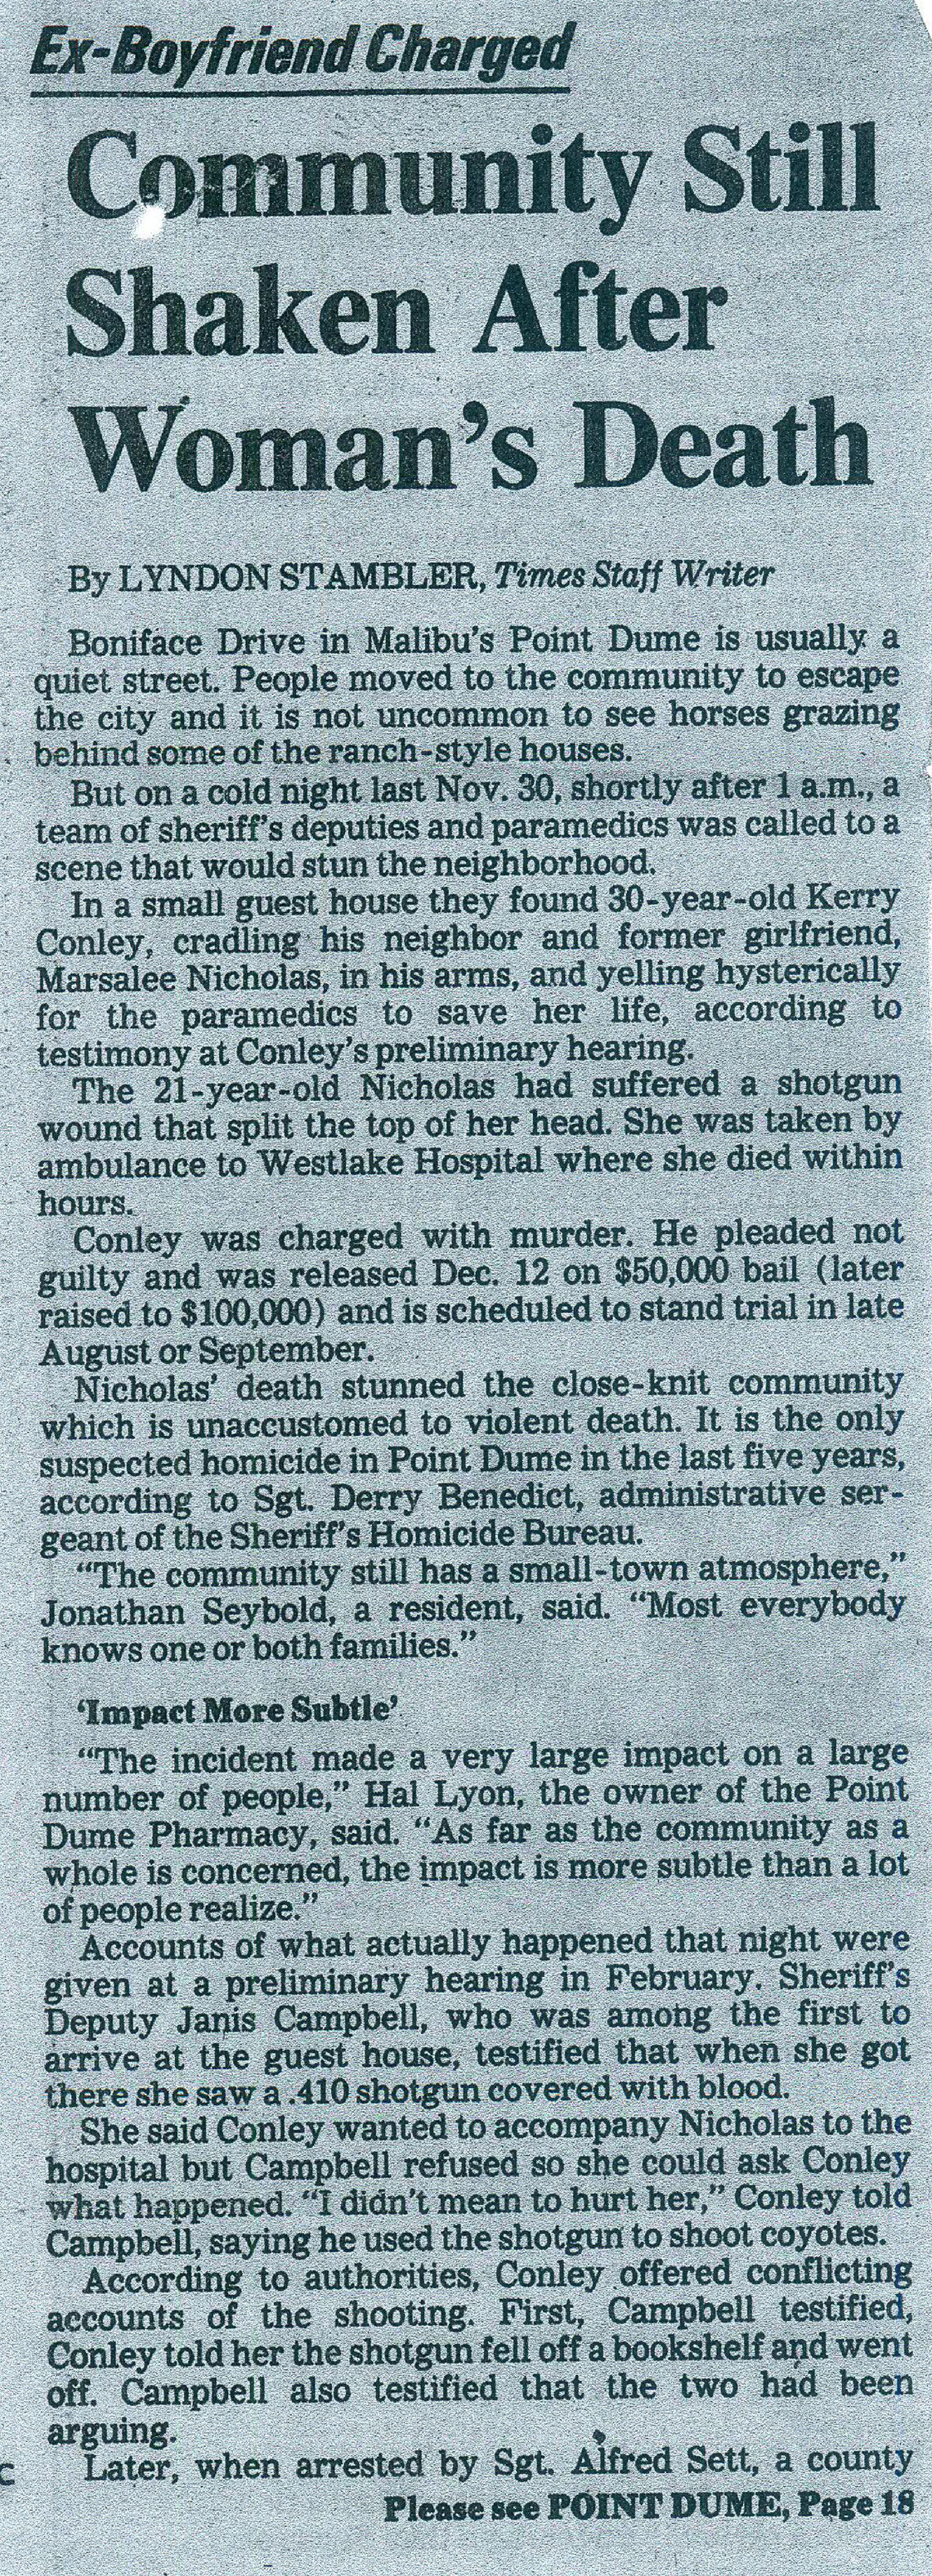 A clip from the Los Angeles Times about Marsalee Nicholas's death.